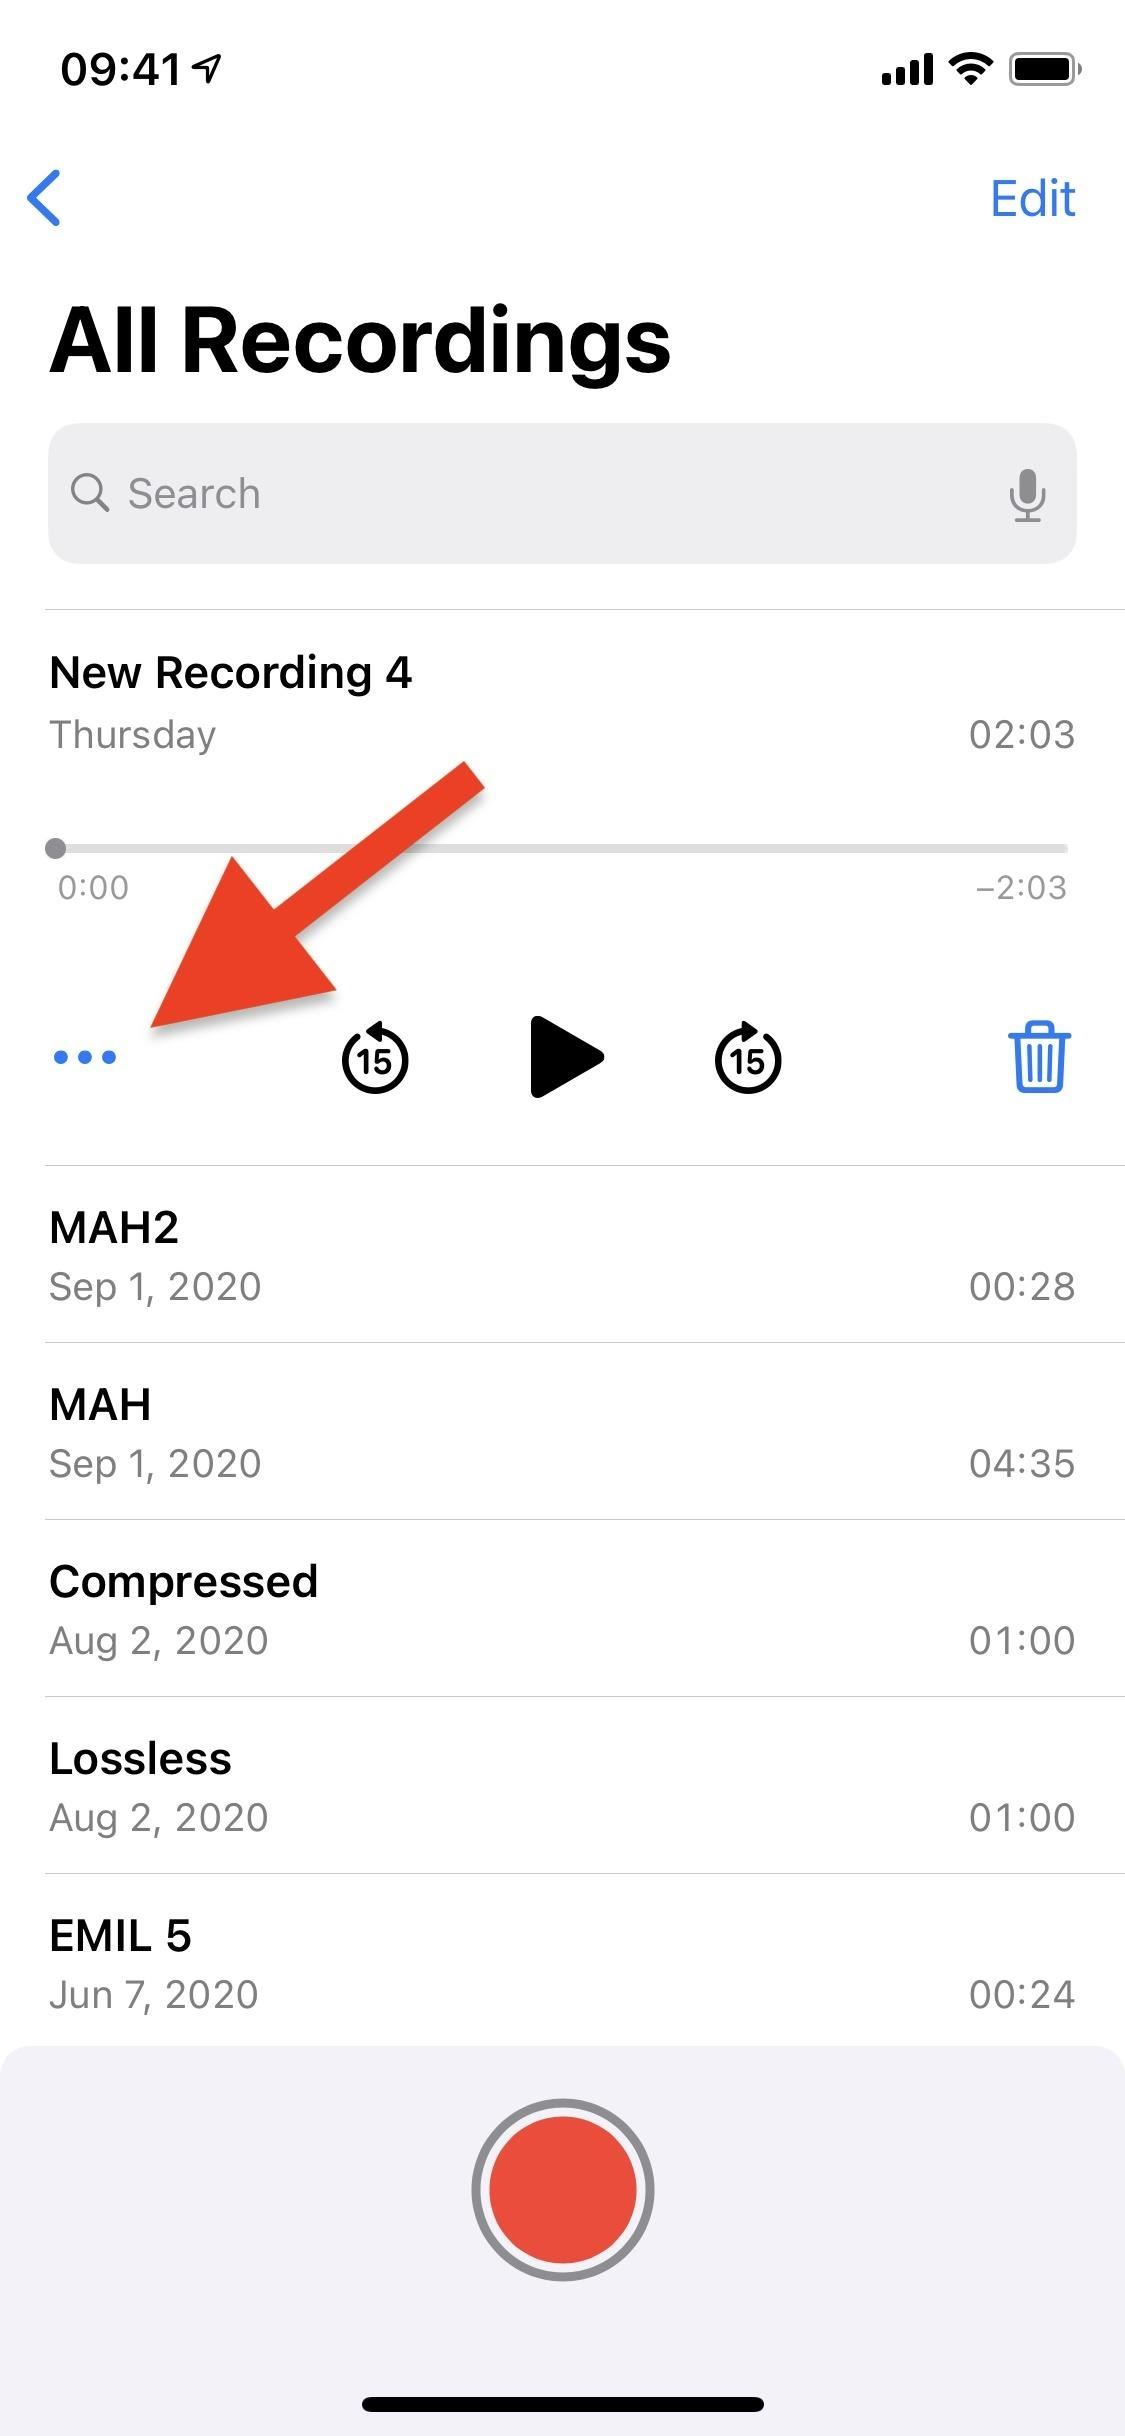 How to reduce background noise and echoes for higher quality voice memos in iOS 14